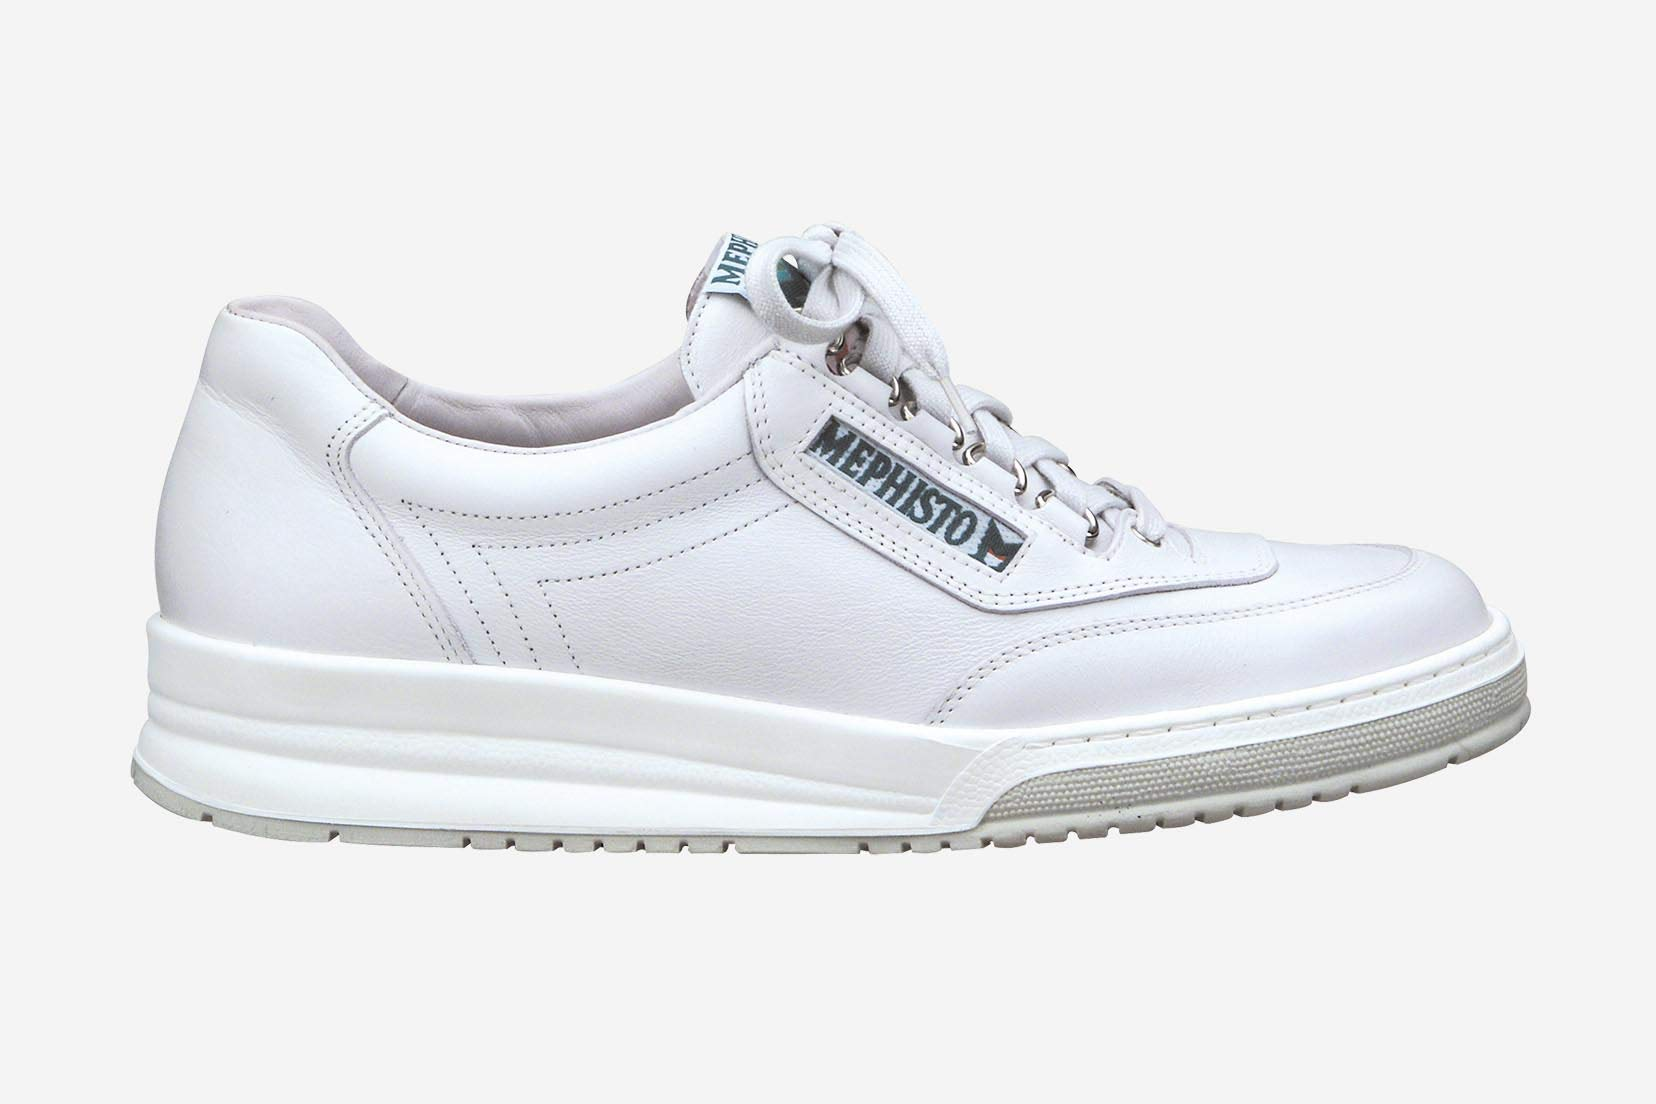 c2d87f93333a93 Galleon - Mephisto Men s Match Sneakers White Leather 47 (US Men s 13)